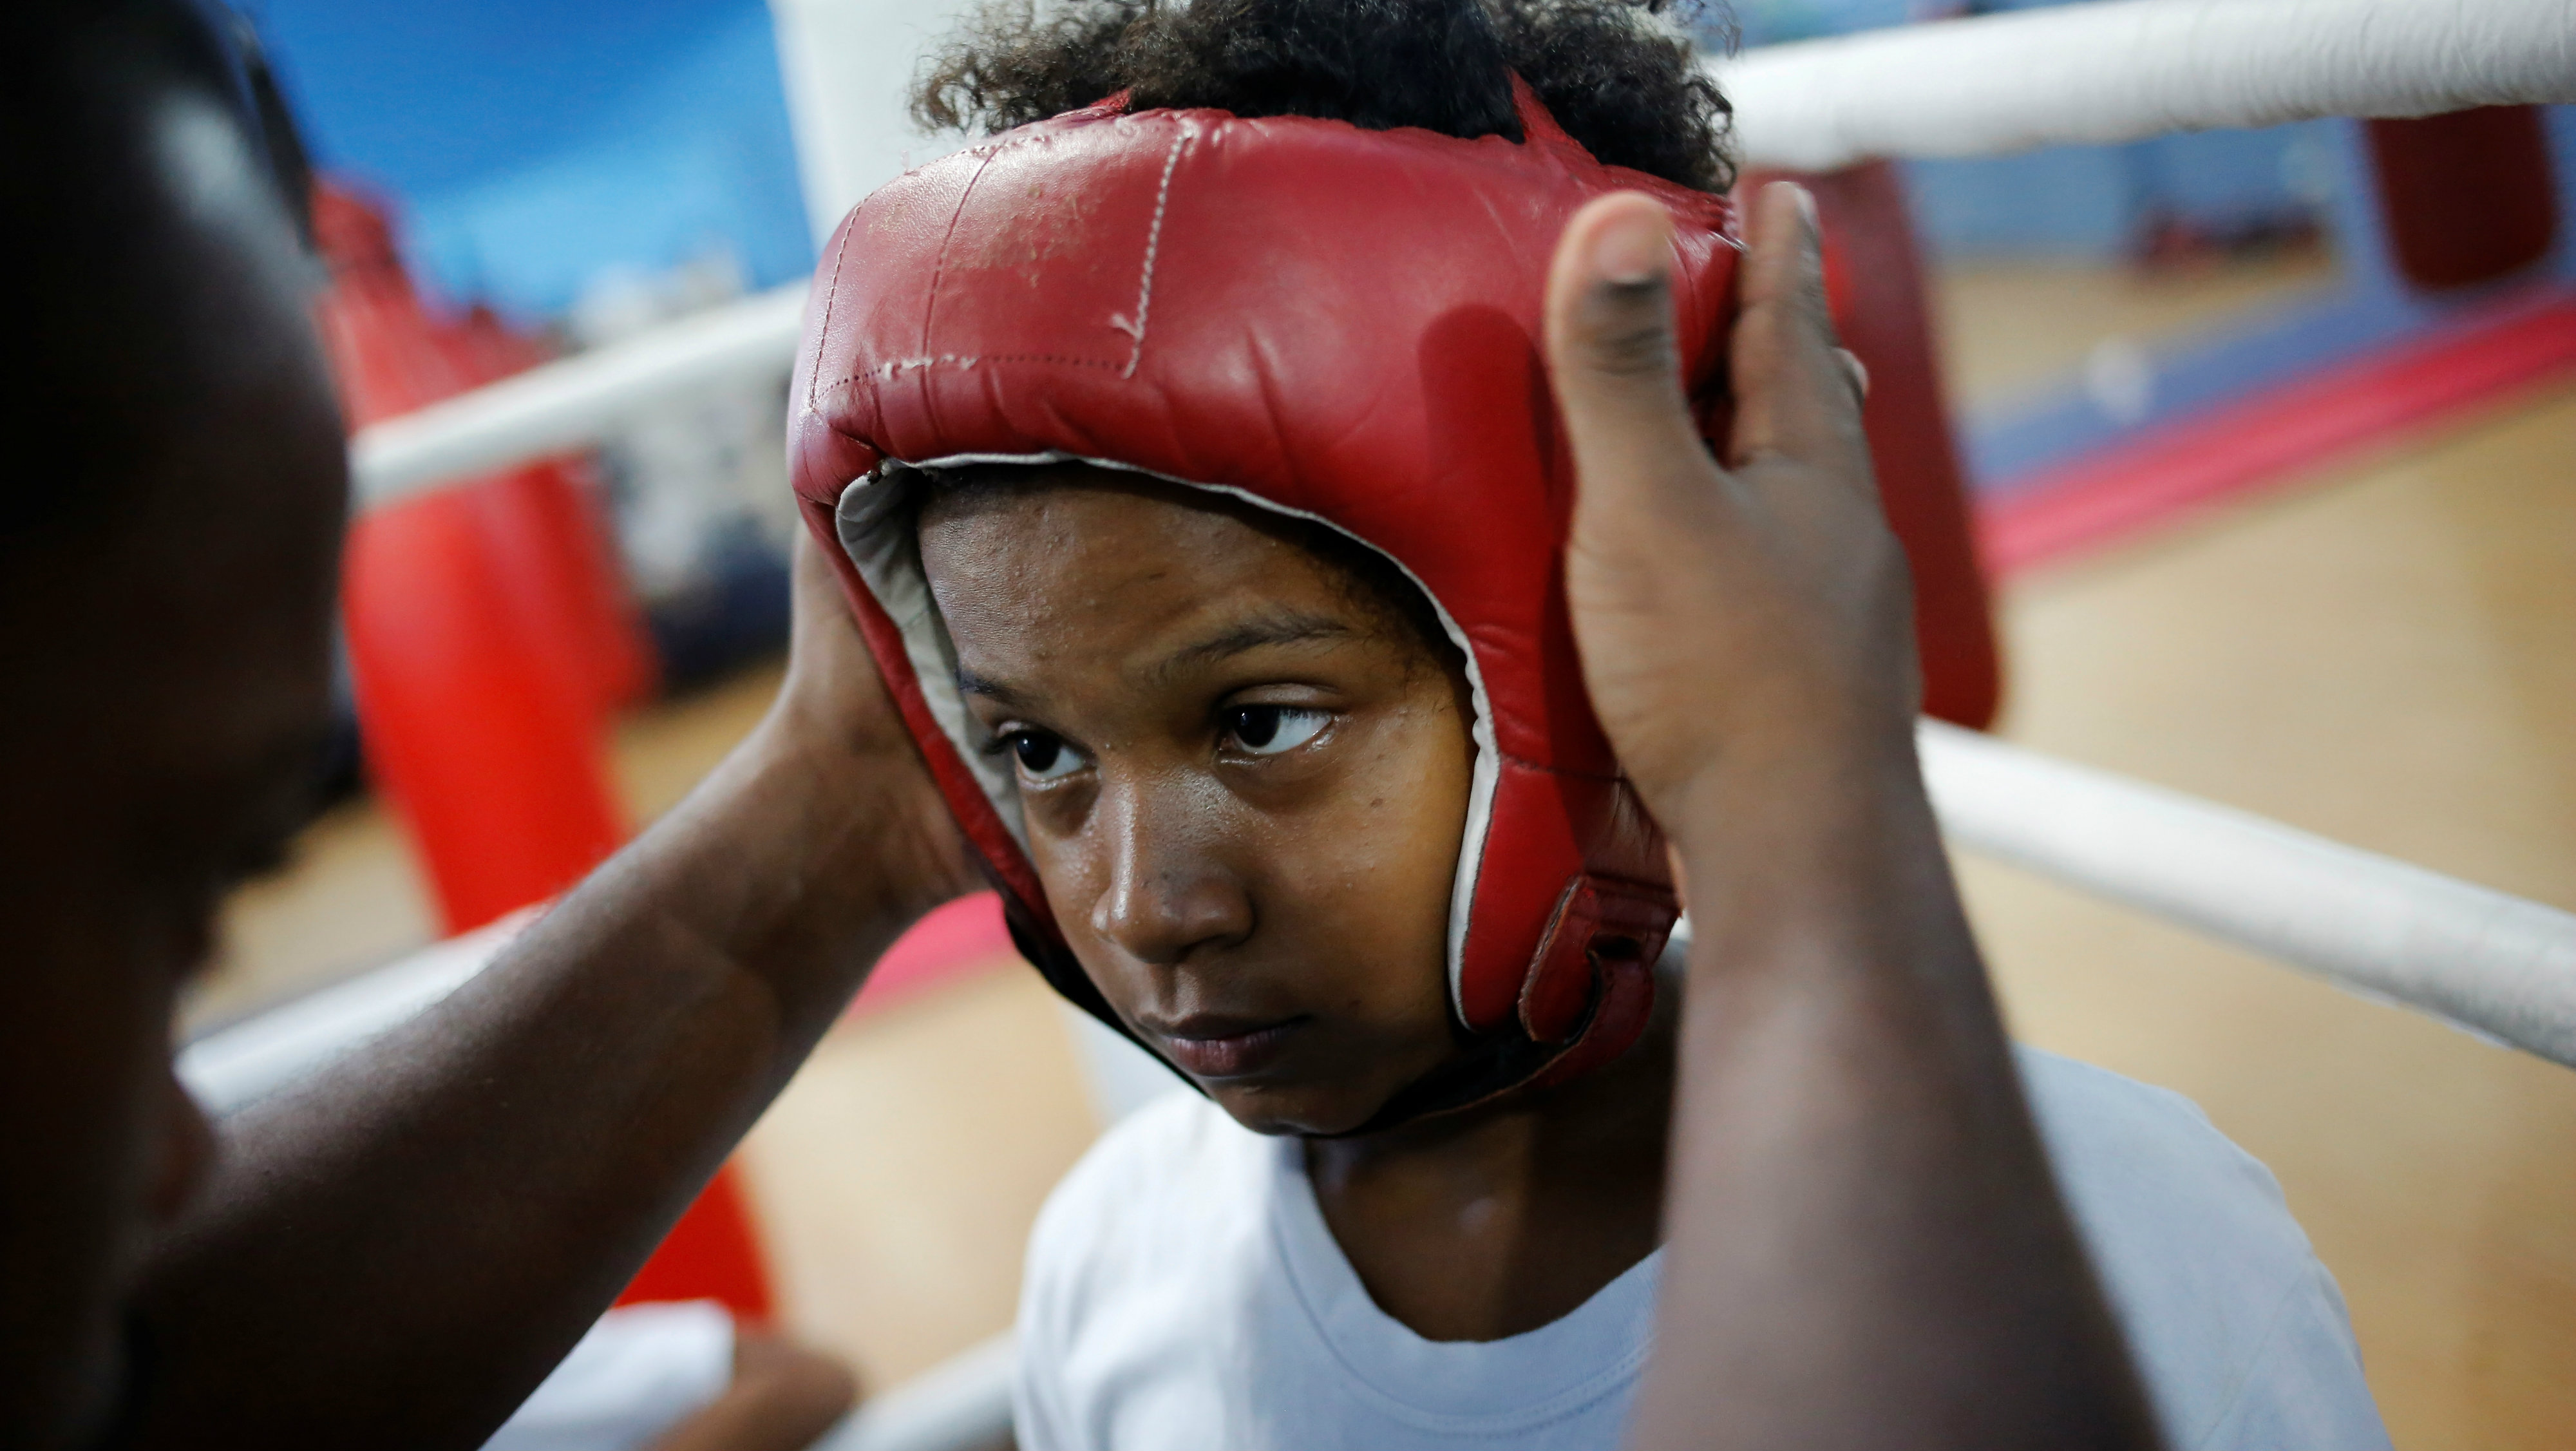 """Teacher Alan (L) puts helmet on a child during an exercise session at a boxing school, in the Mare favela of Rio de Janeiro, Brazil, June 2, 2016. REUTERS/Nacho Doce SEARCH """"NACHO BOXING"""" FOR THIS STORY. SEARCH """"THE WIDER IMAGE"""" FOR ALL STORIES"""